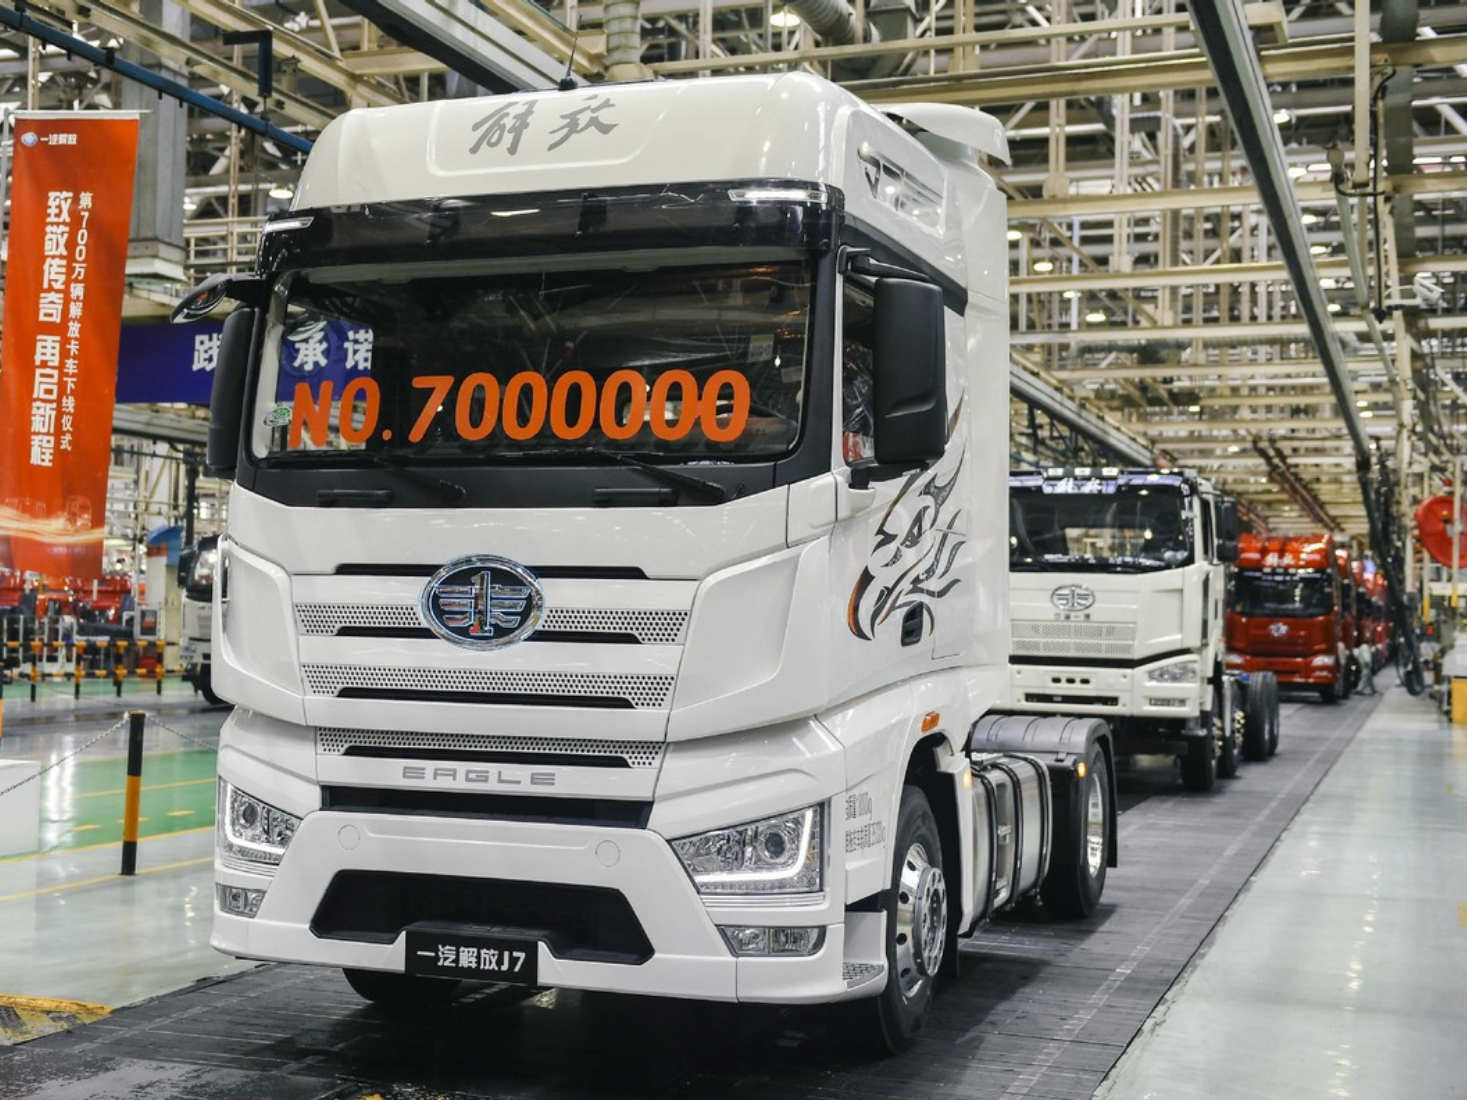 China's heavy truck sales continue to rise in November